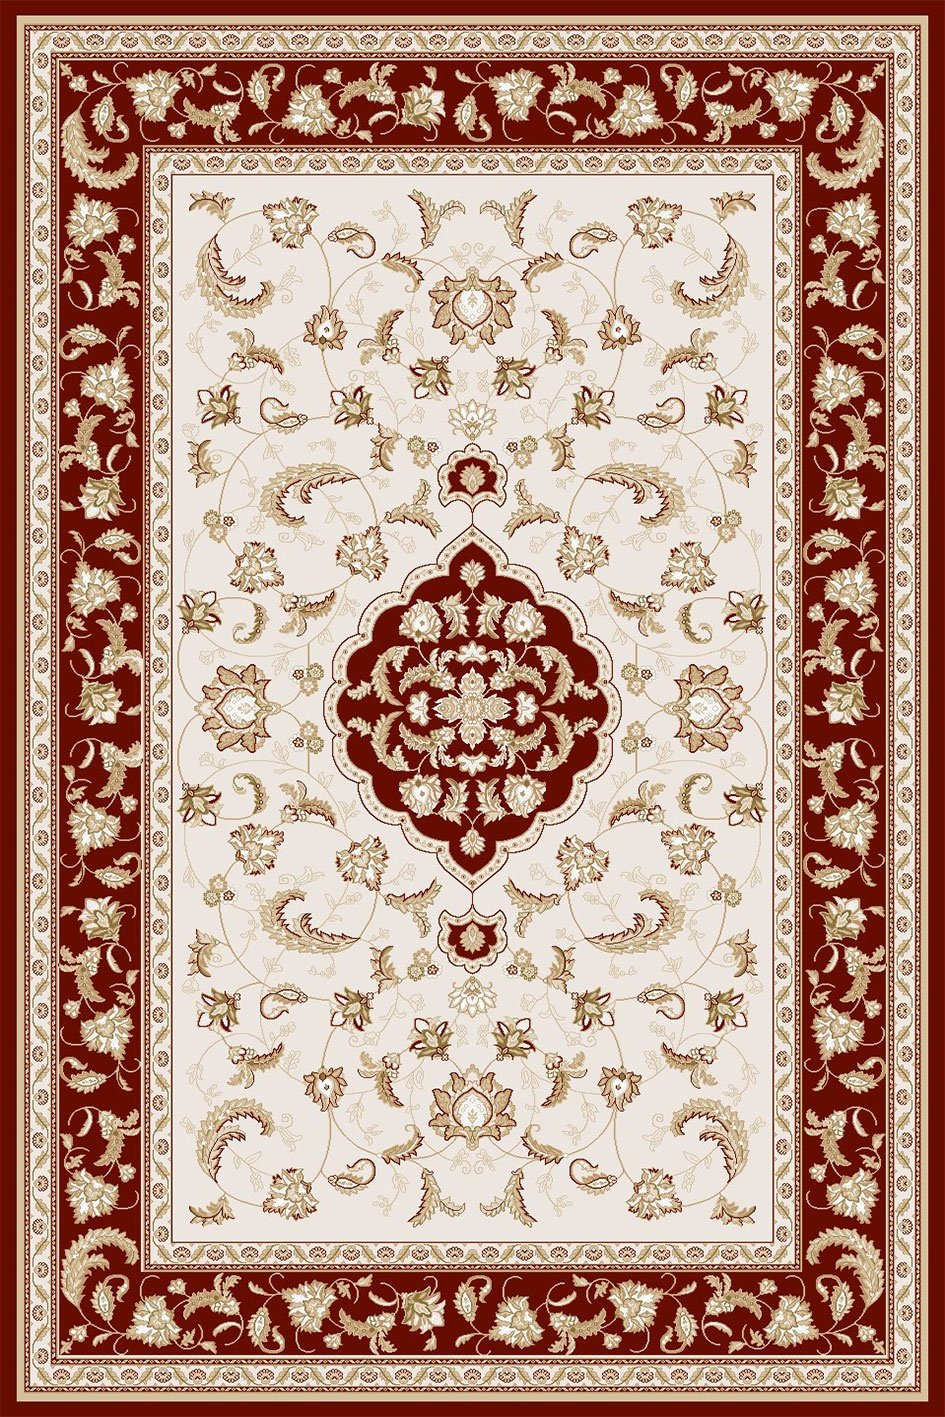 Maxmar Carpet Selimiye Series Red Decorative Area Rug 3013